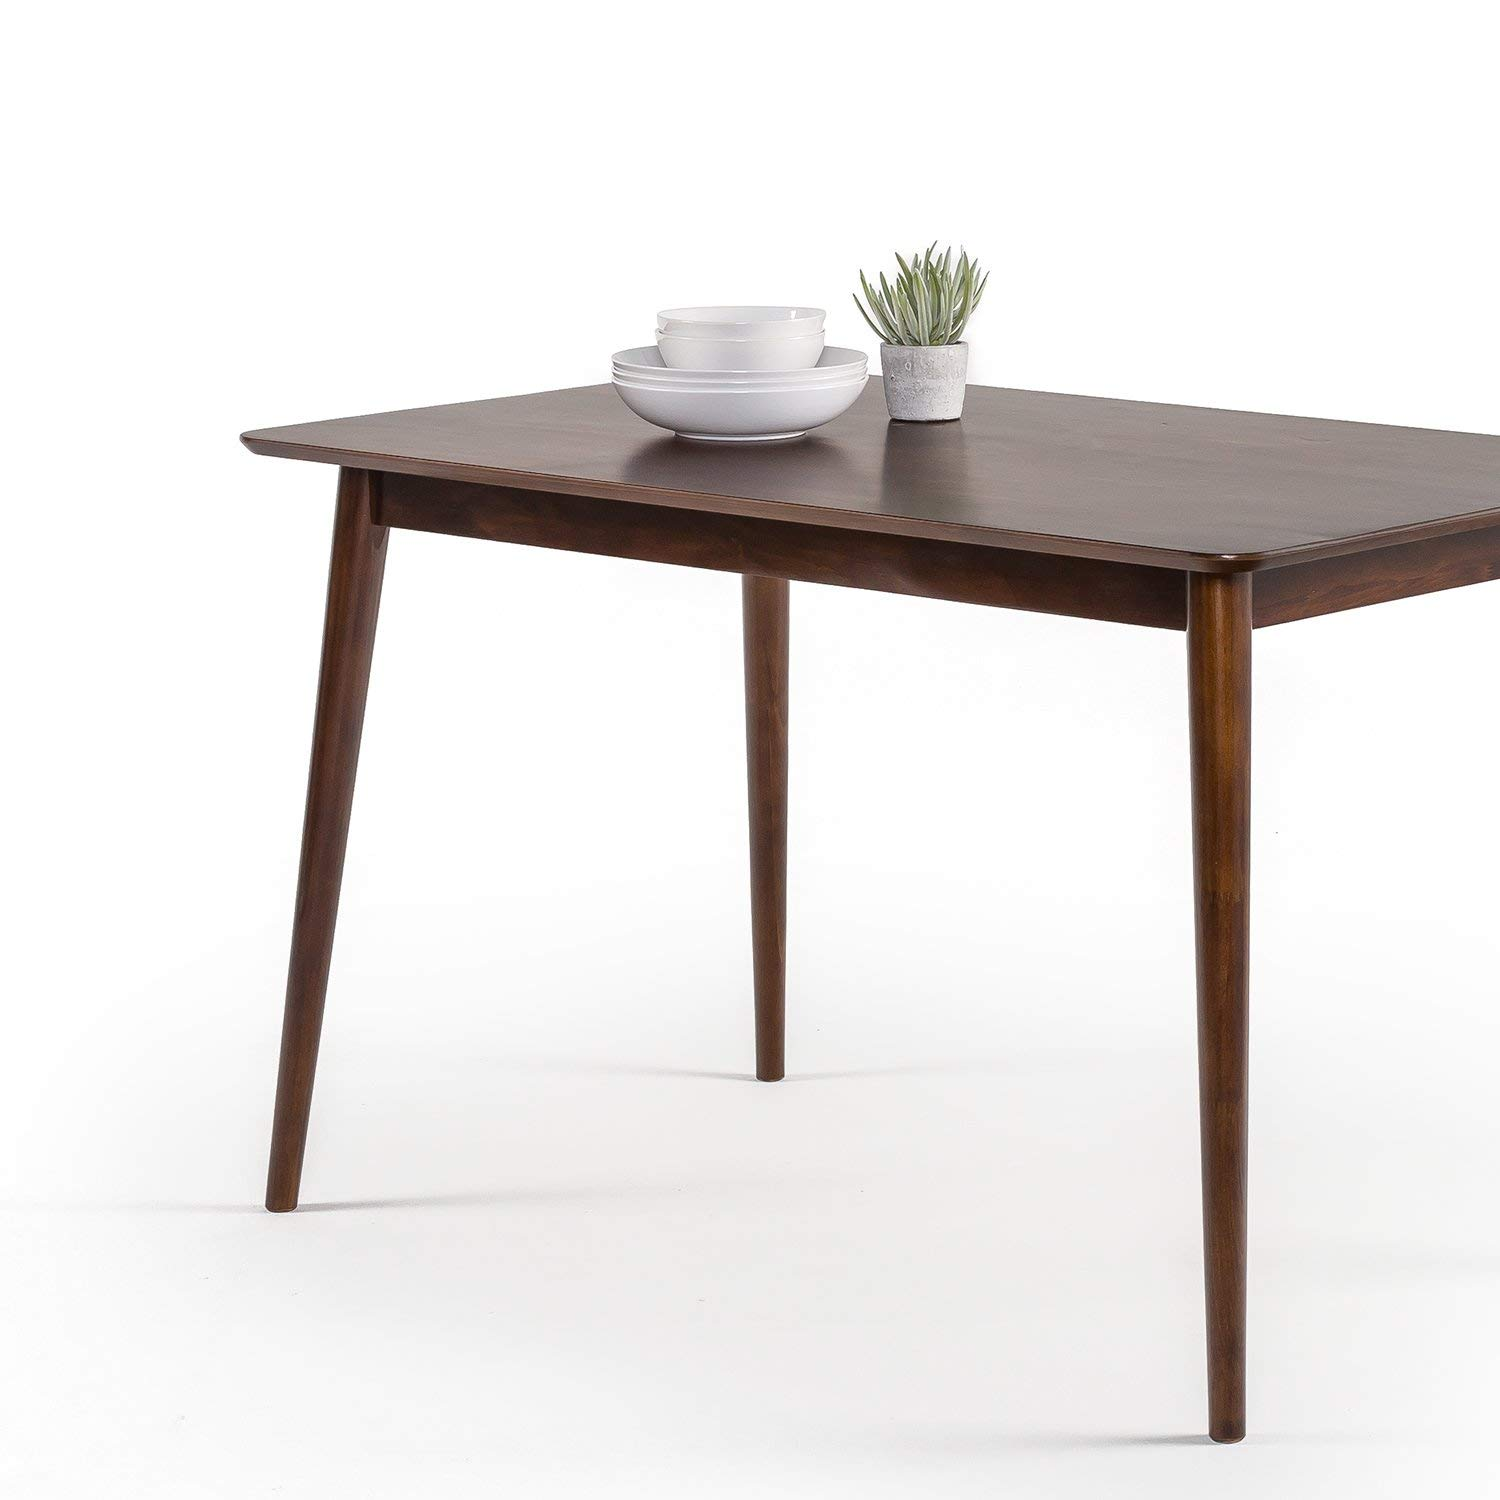 Dining Modern Pine Wood Table Espresso 2 4 Person with Rounded Corner Details Easy Assemble 47.2 x 29.5 x 29 inches for Kitchen Living Room Table Top Sandable